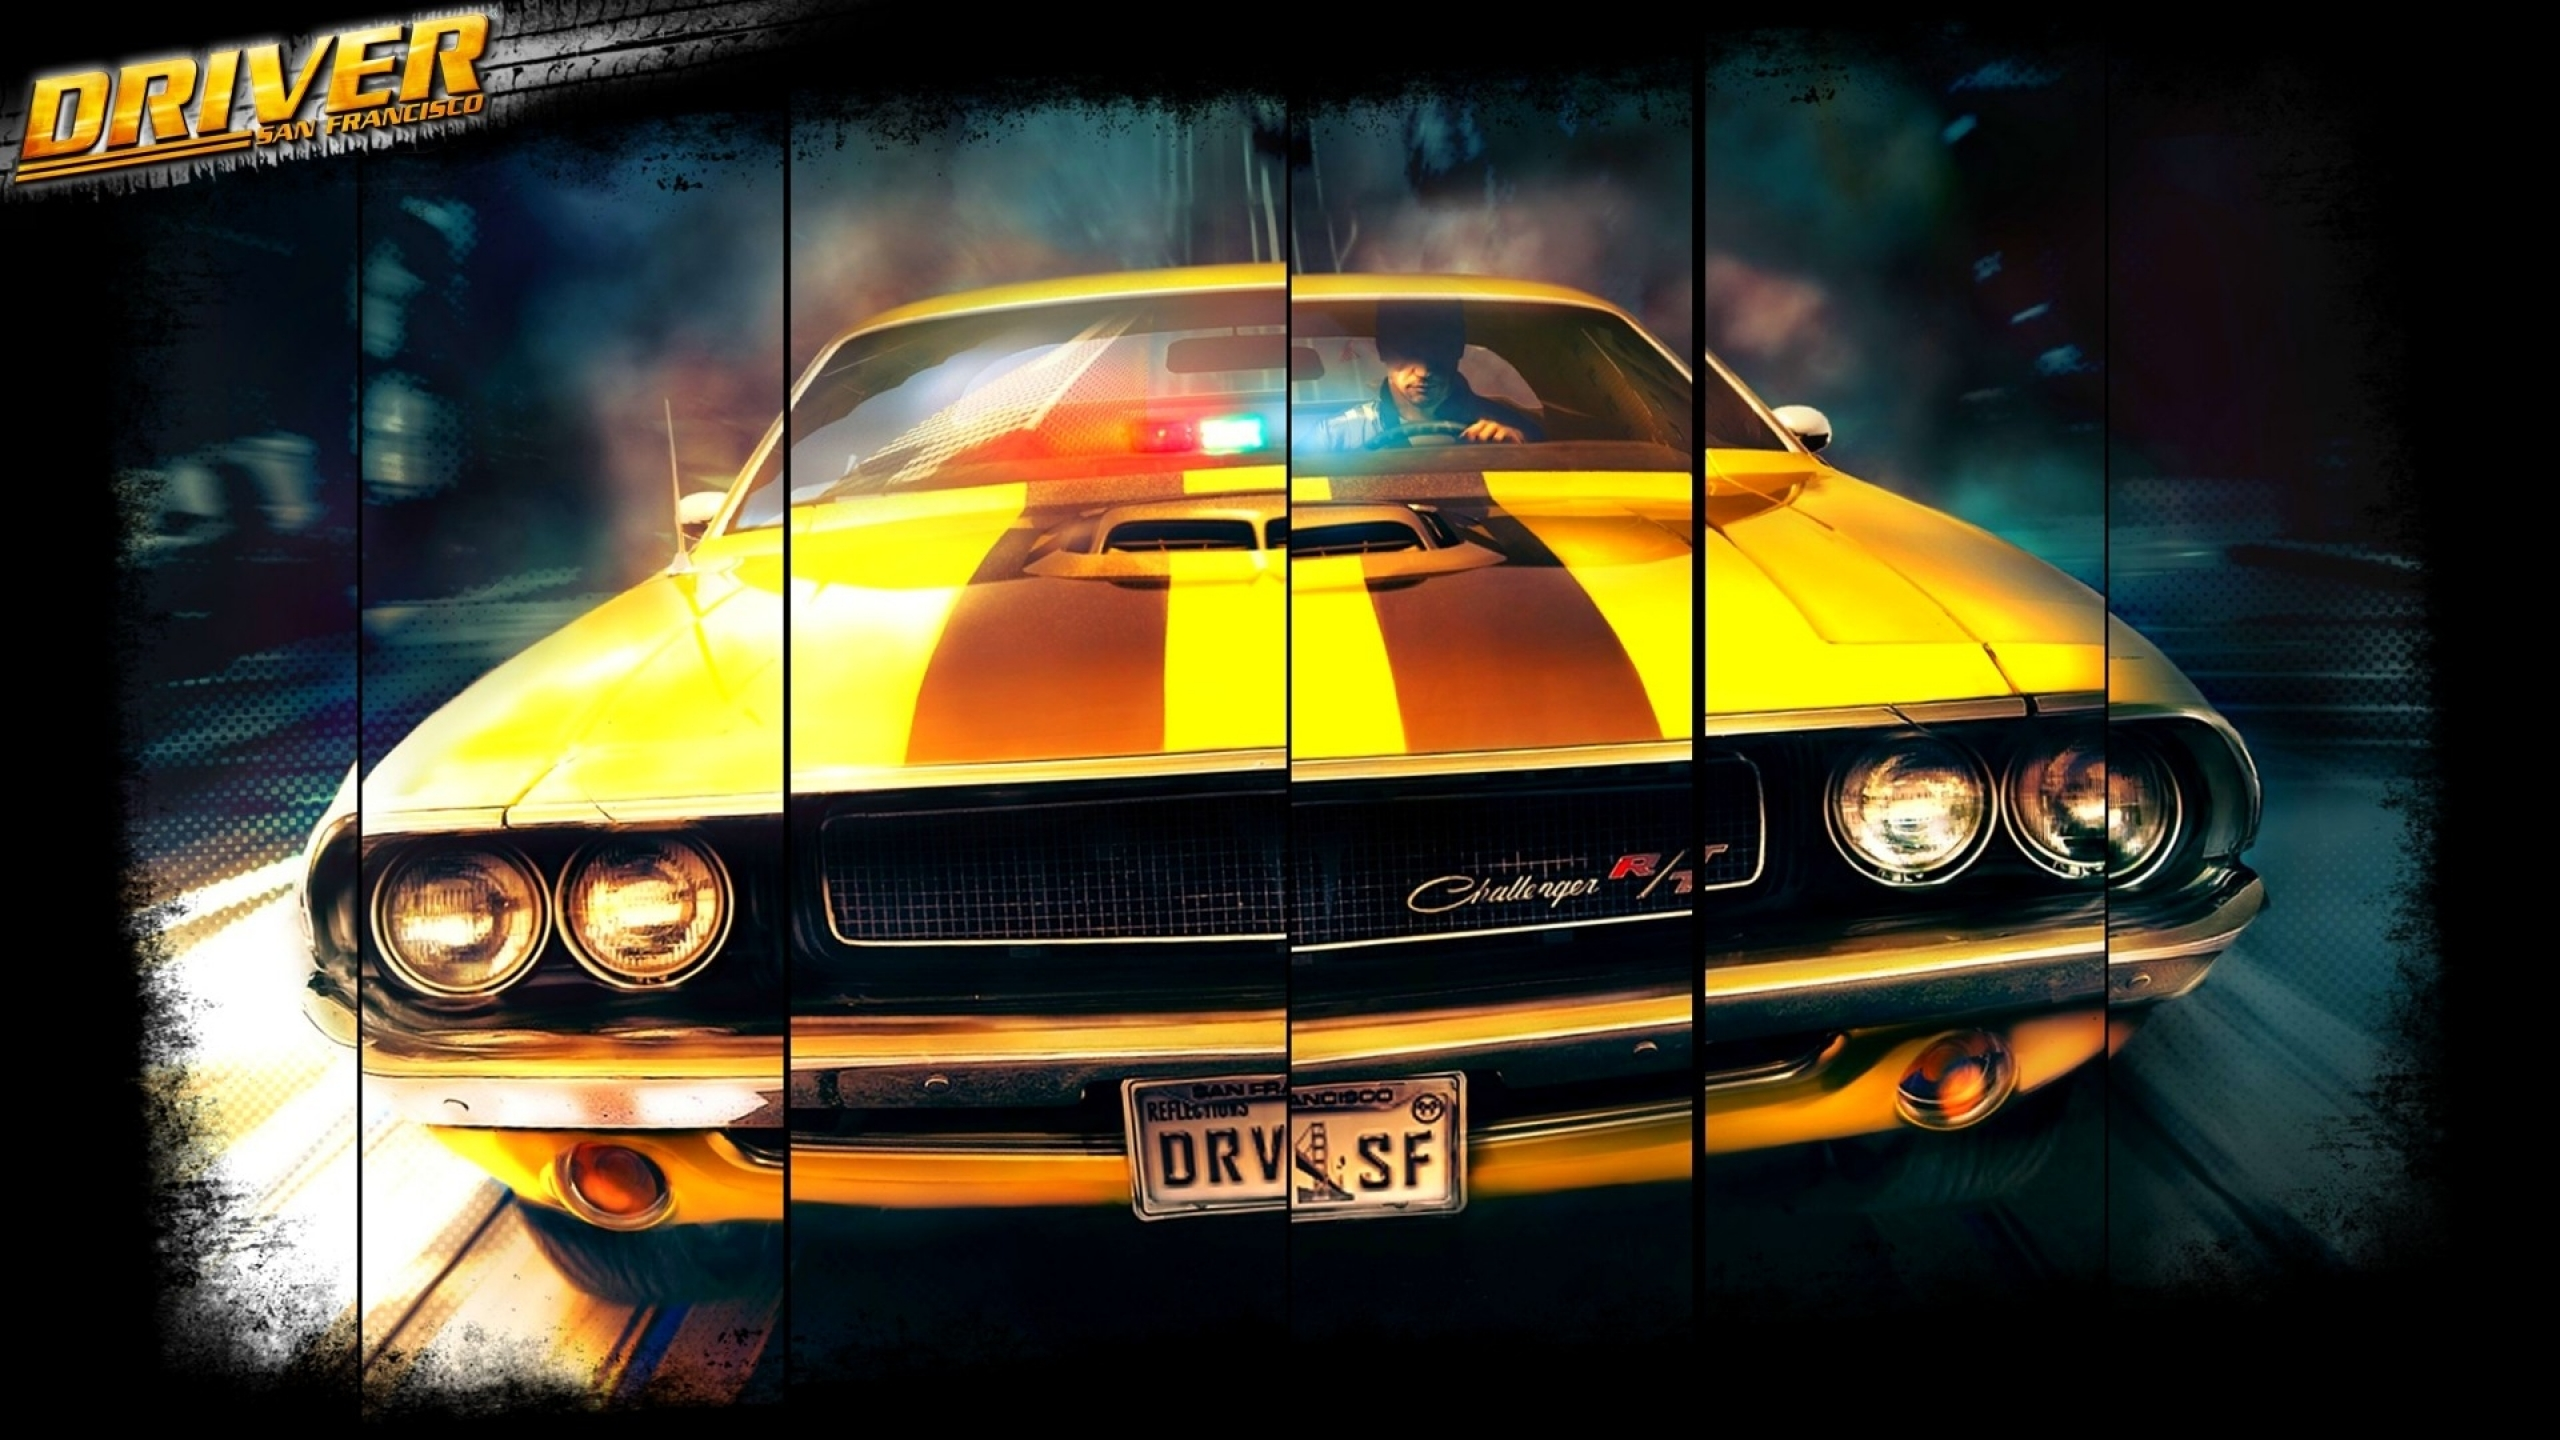 Iphone 6 Plus Muscle Car Wallpaper Driver San Francisco Full Hd Wallpaper And Background